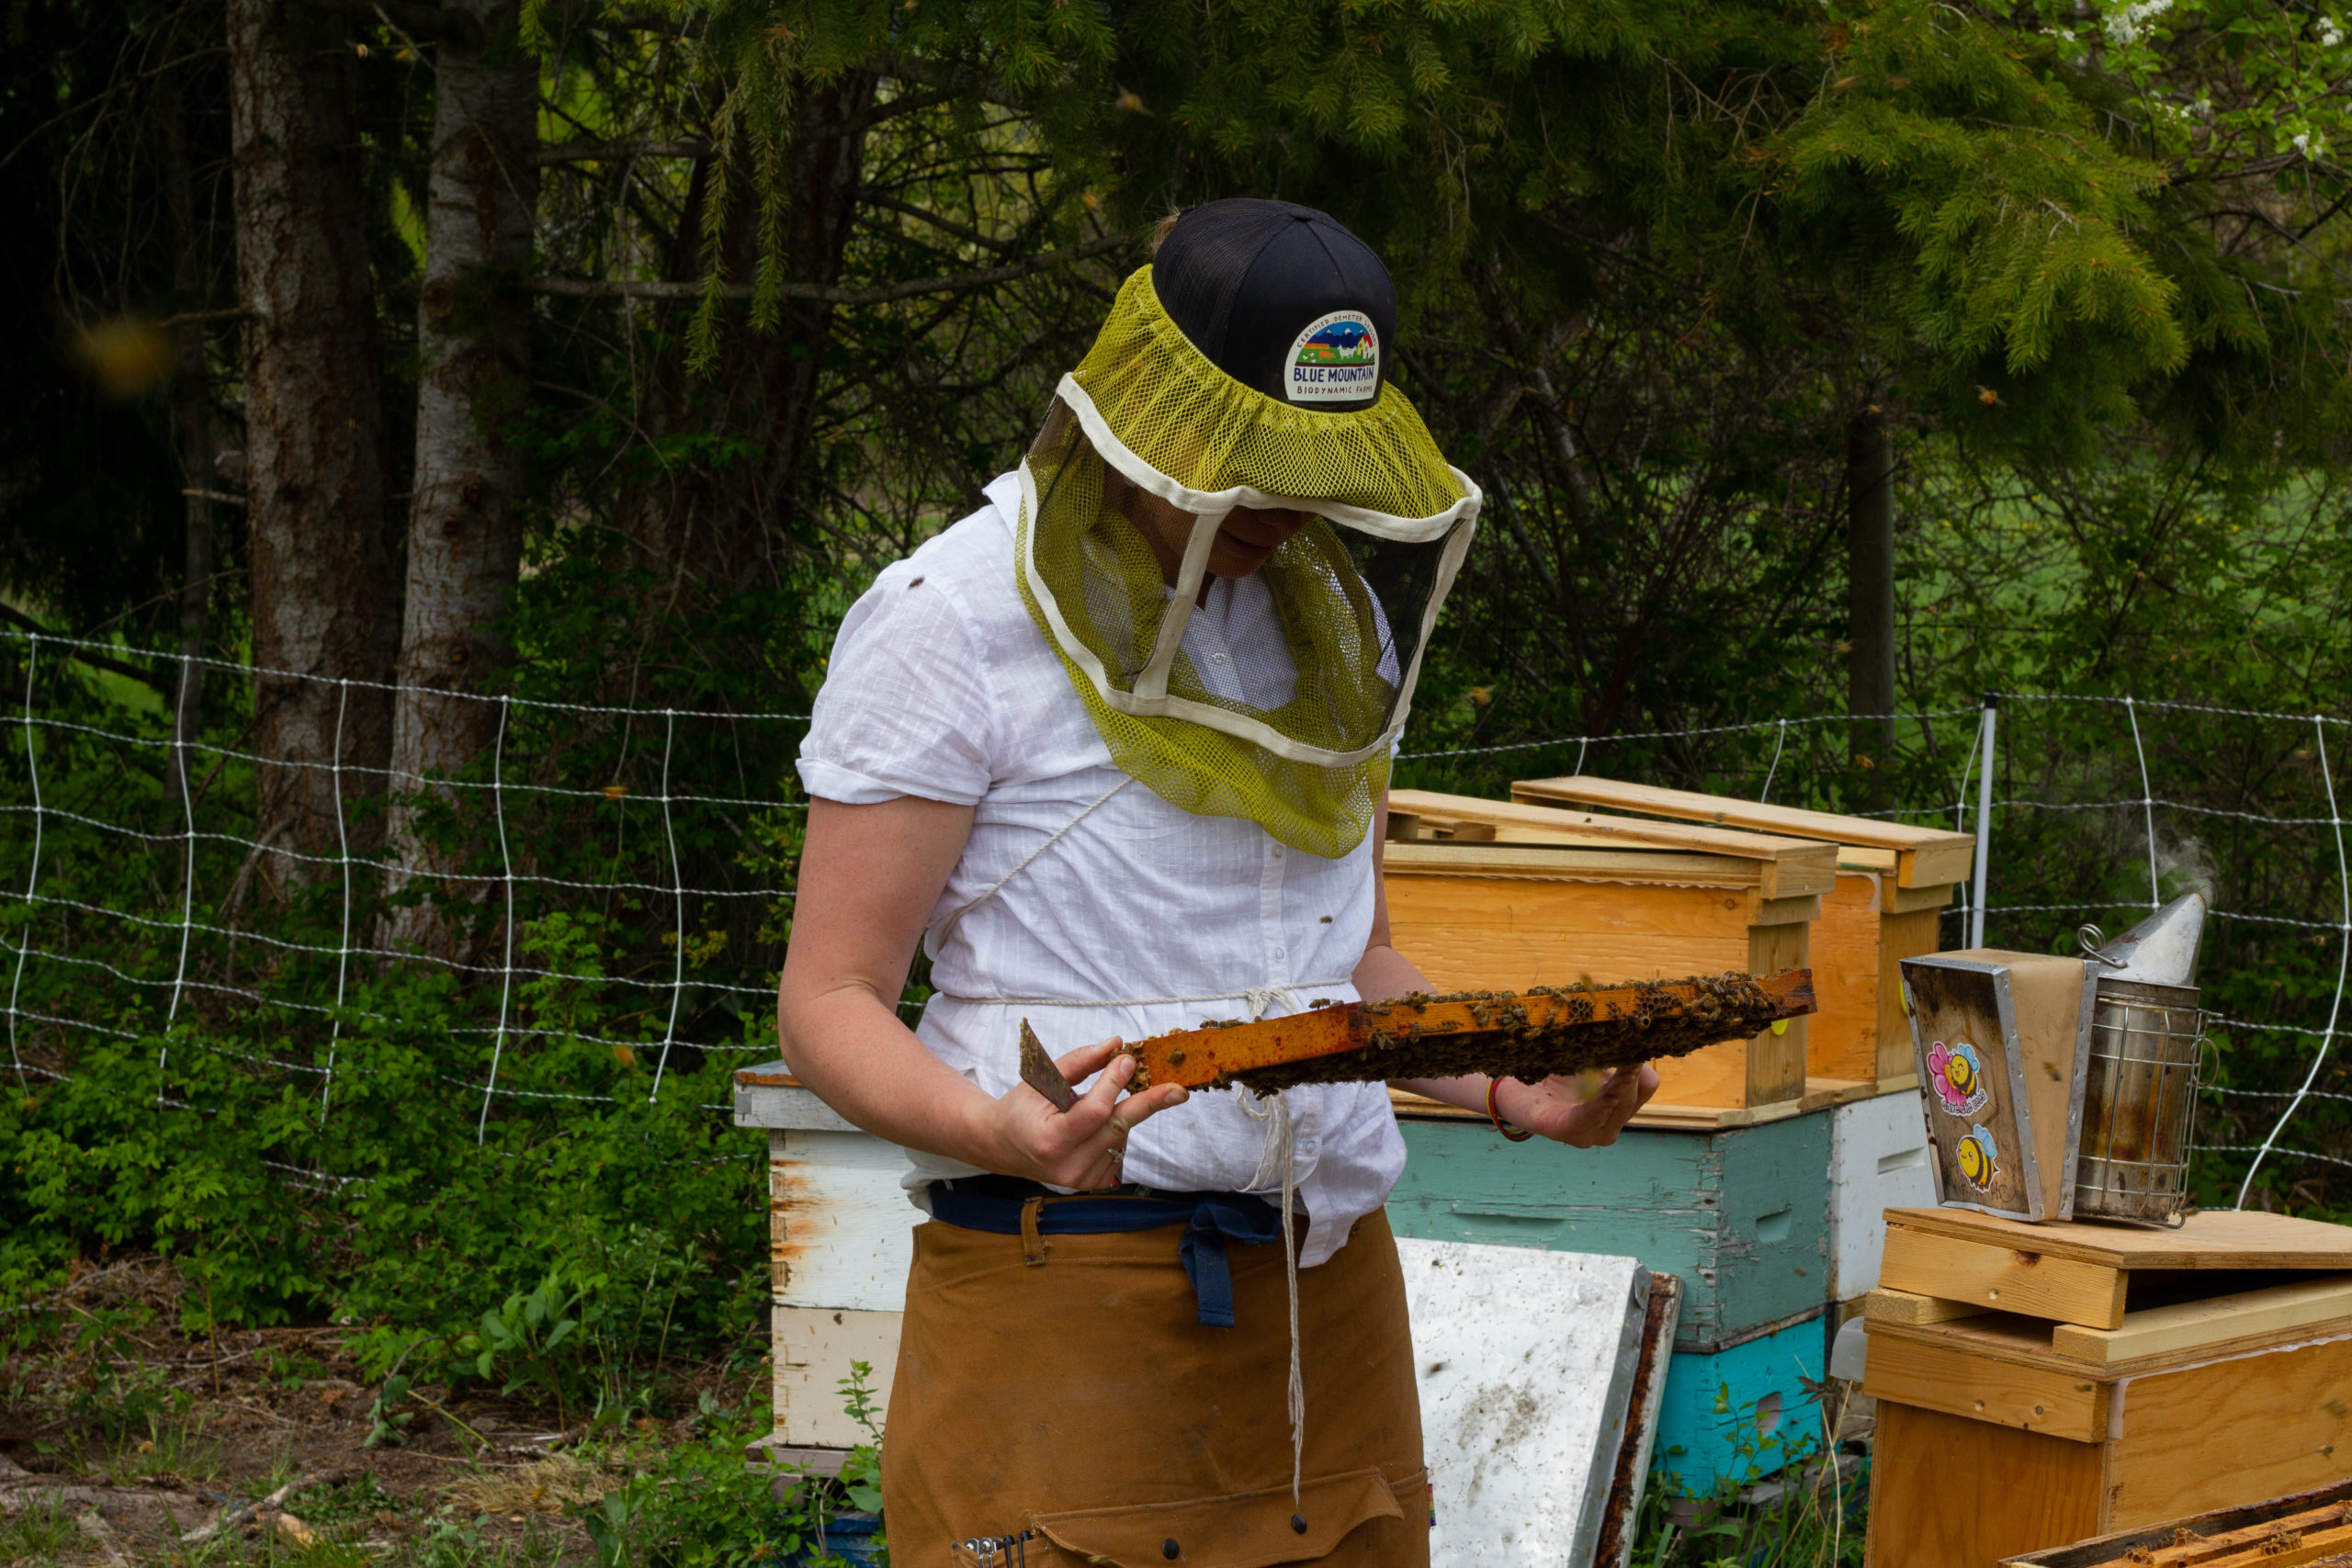 A photo of Eliese Watson checking for open brood, surrounded by beehives and trees.